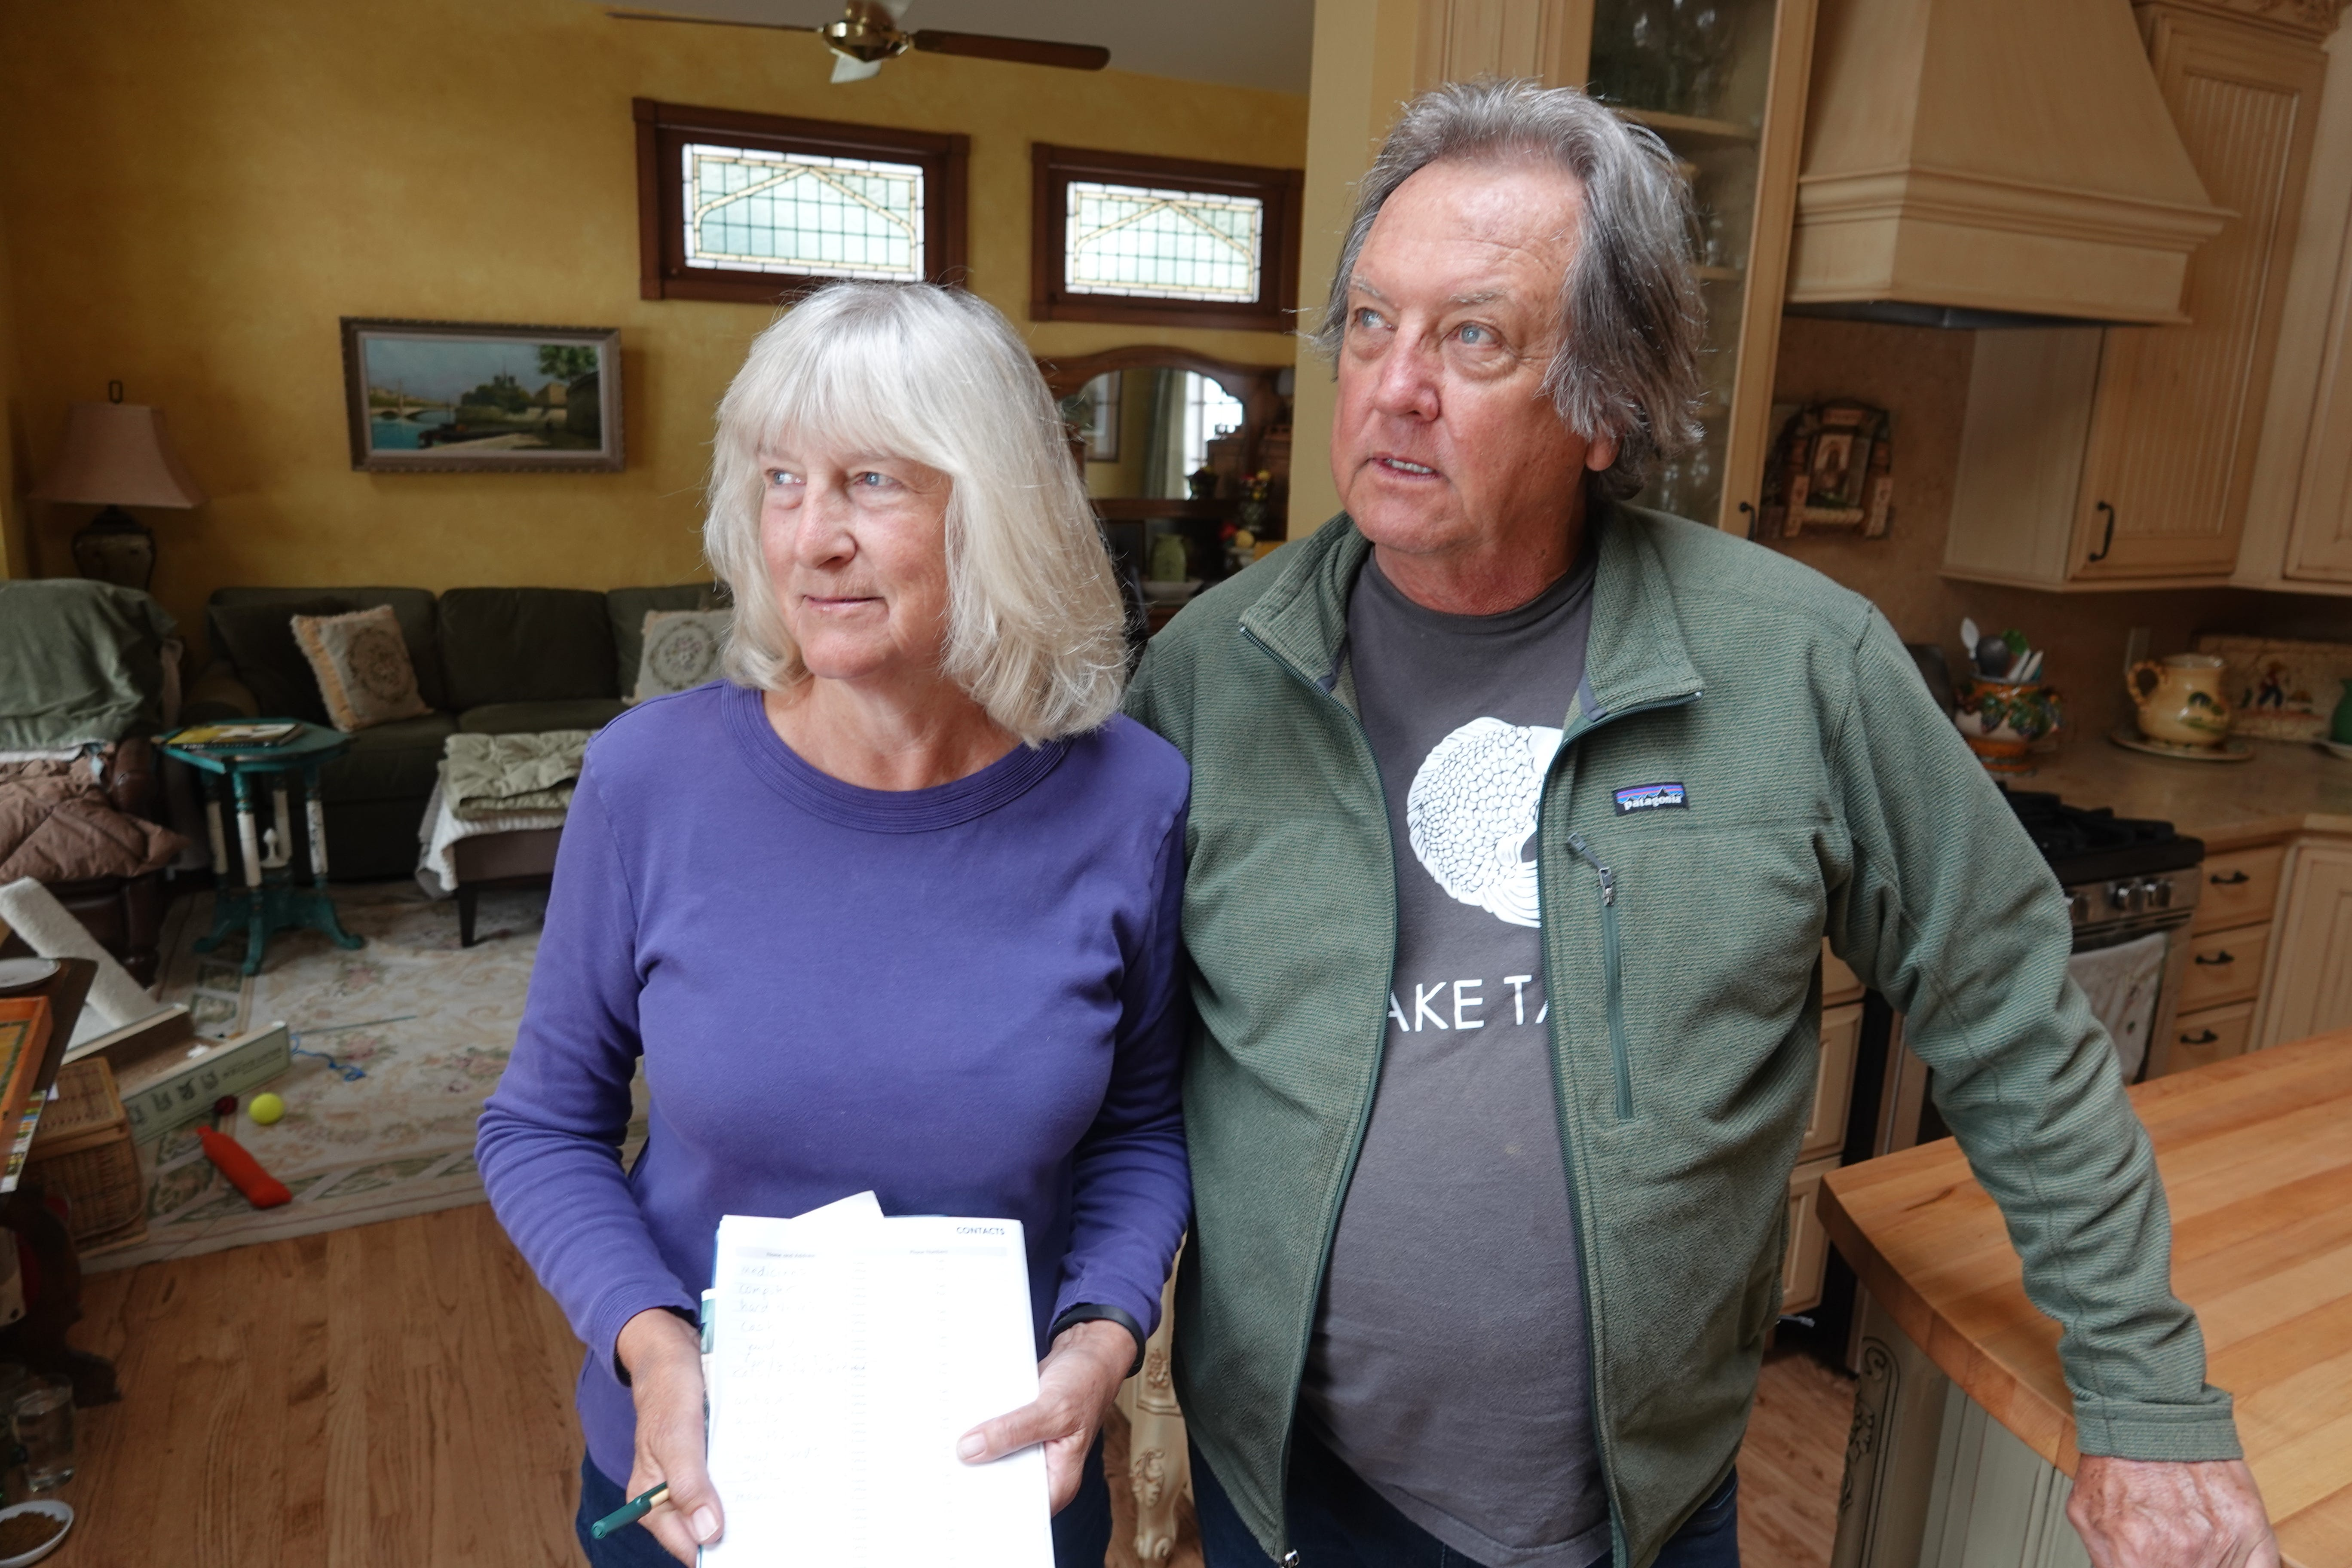 Laura and Ed Heneveld stand in their Olympic Valley, Calif., home with a checklist of items they'd try to save during a wildfire. The couple worries a proposal to add hundreds of homes and nearly 300,000 square feet of commercial development at Squaw Valley Resort could hinder an evacuation.